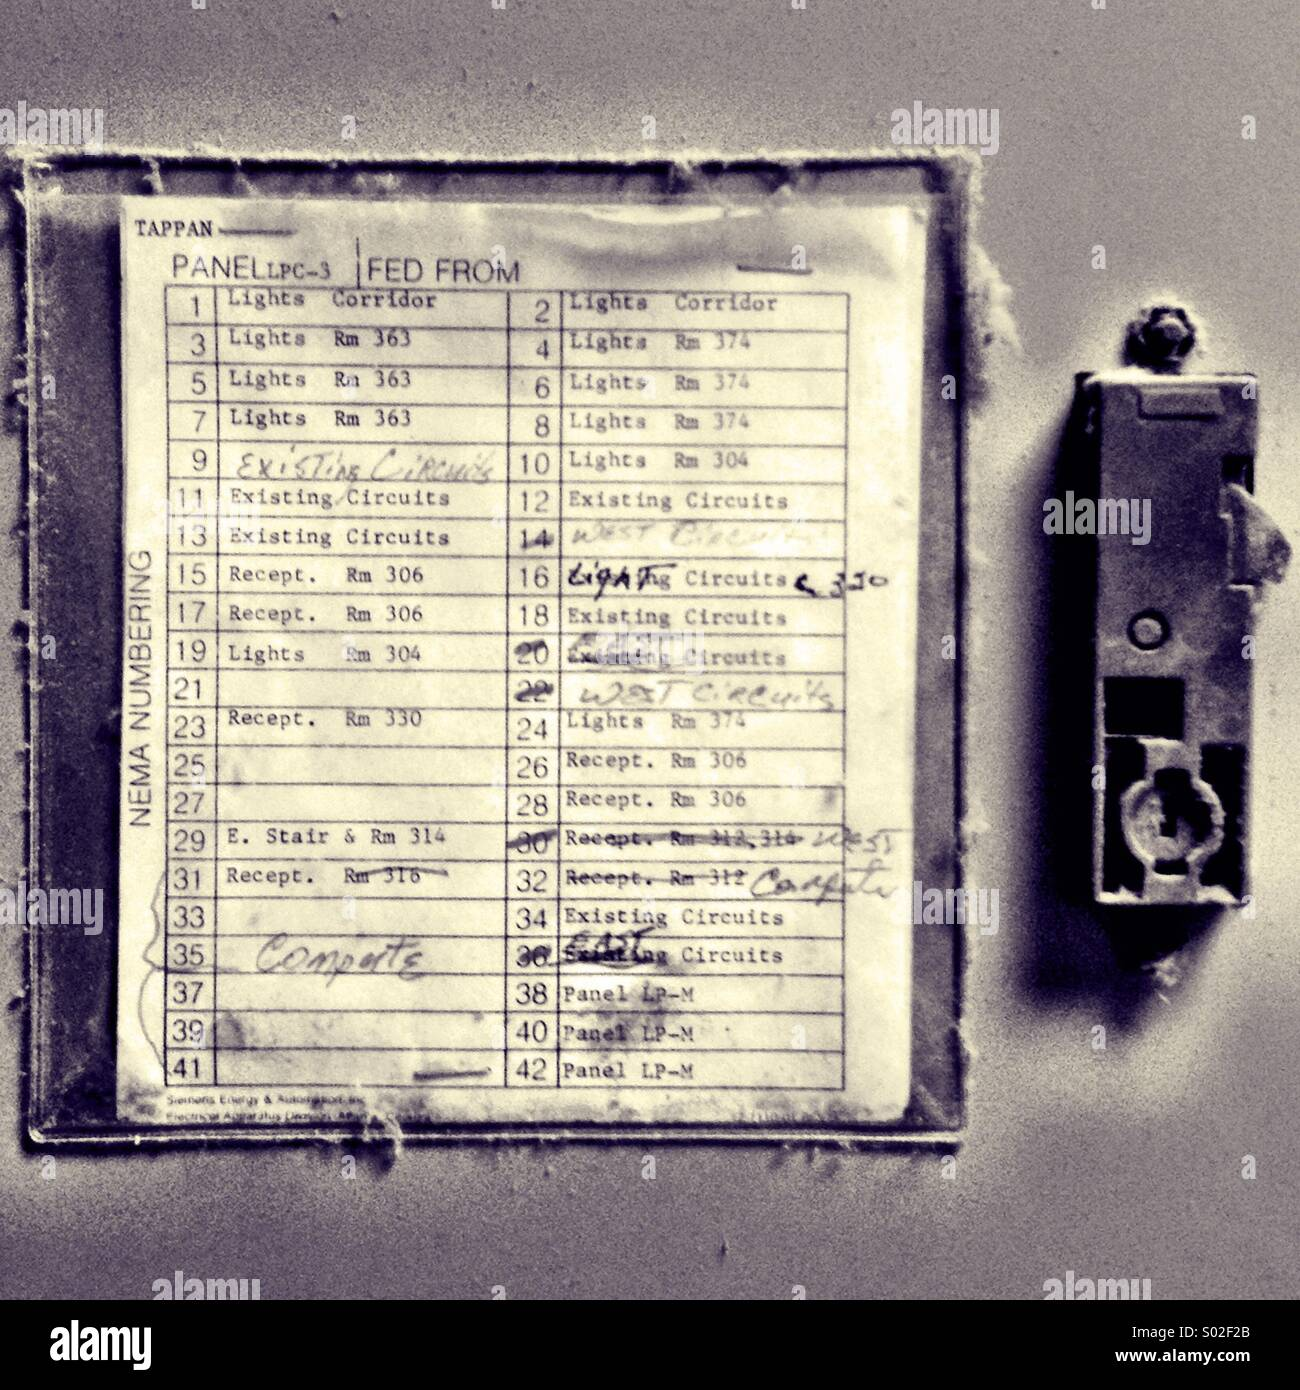 hight resolution of fuse list from electrical junction box